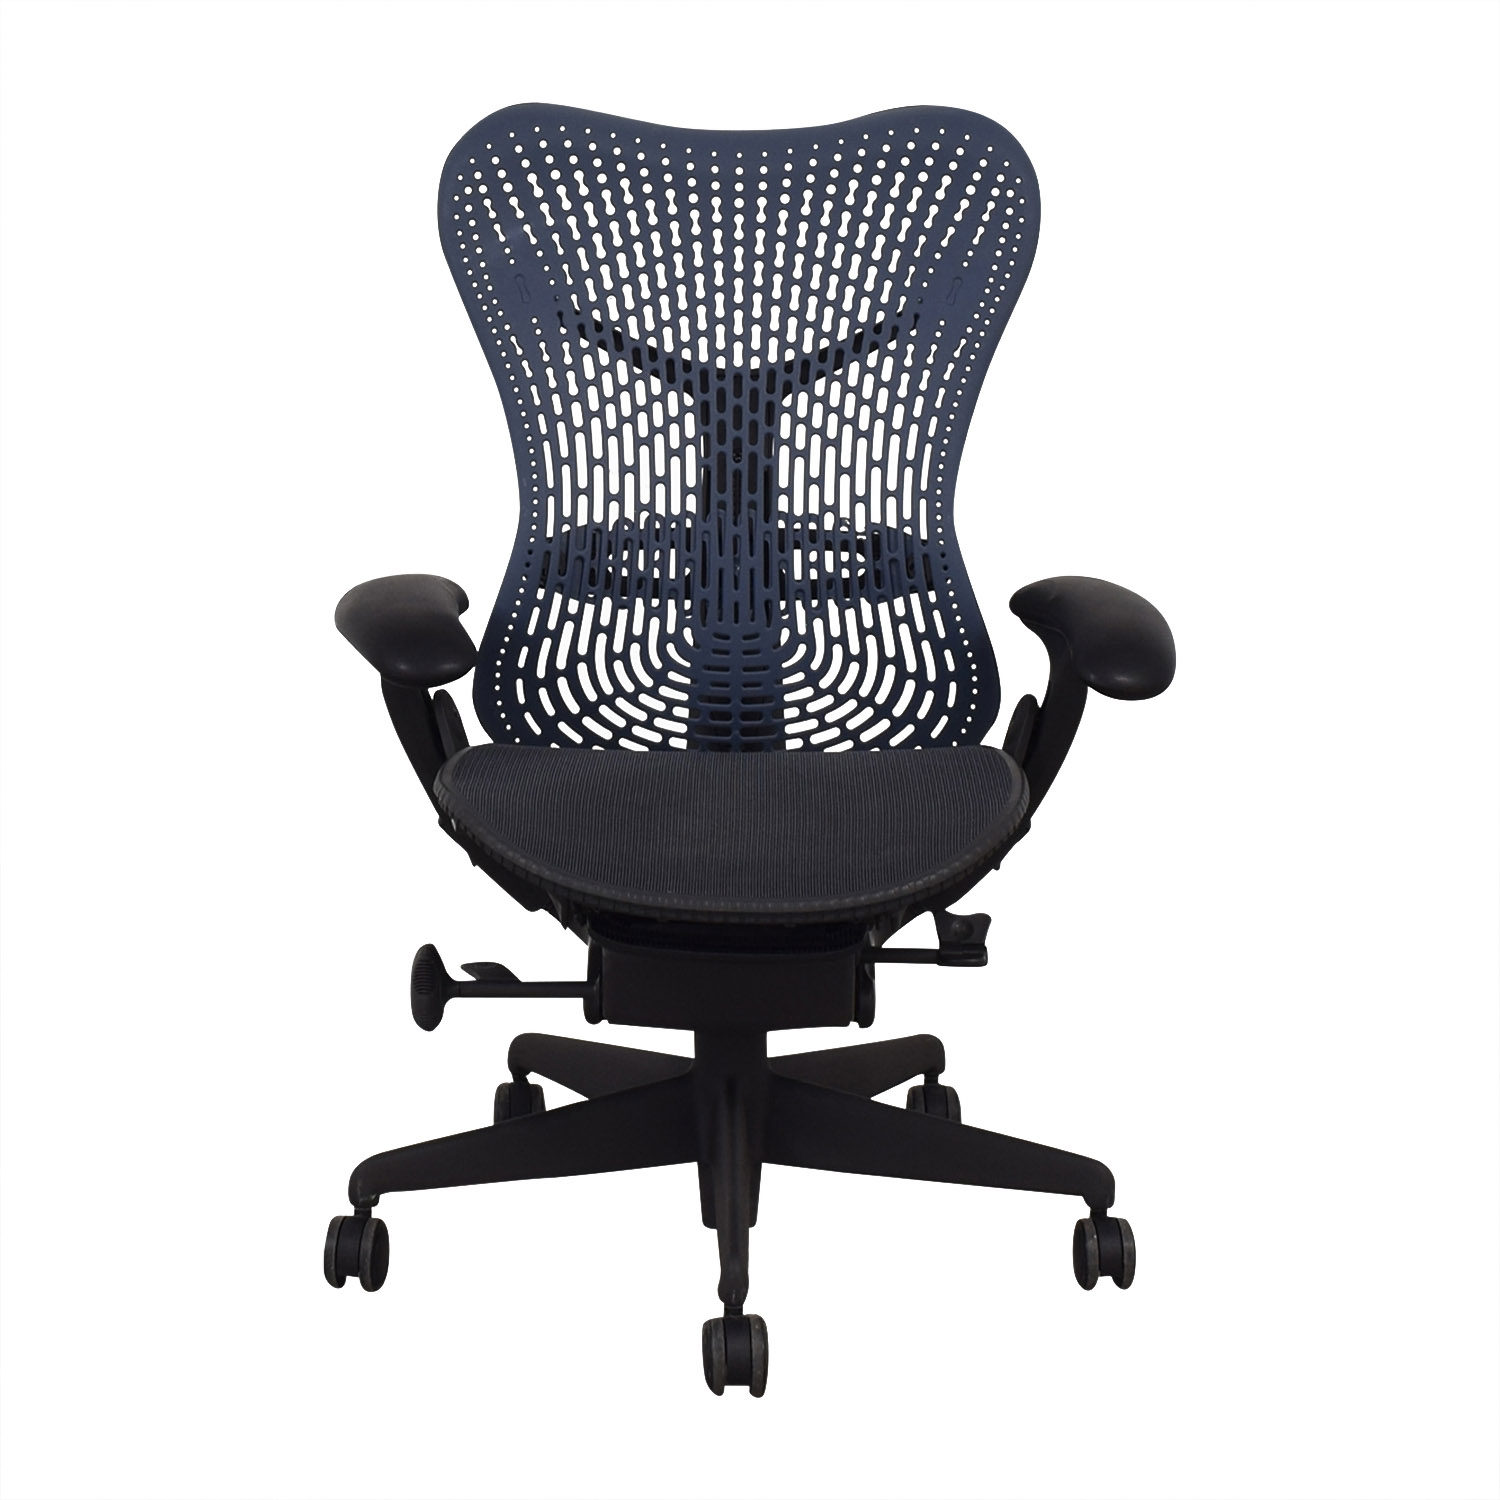 Herman Miller Herman Miller Aeron Office Chair Home Office Chairs